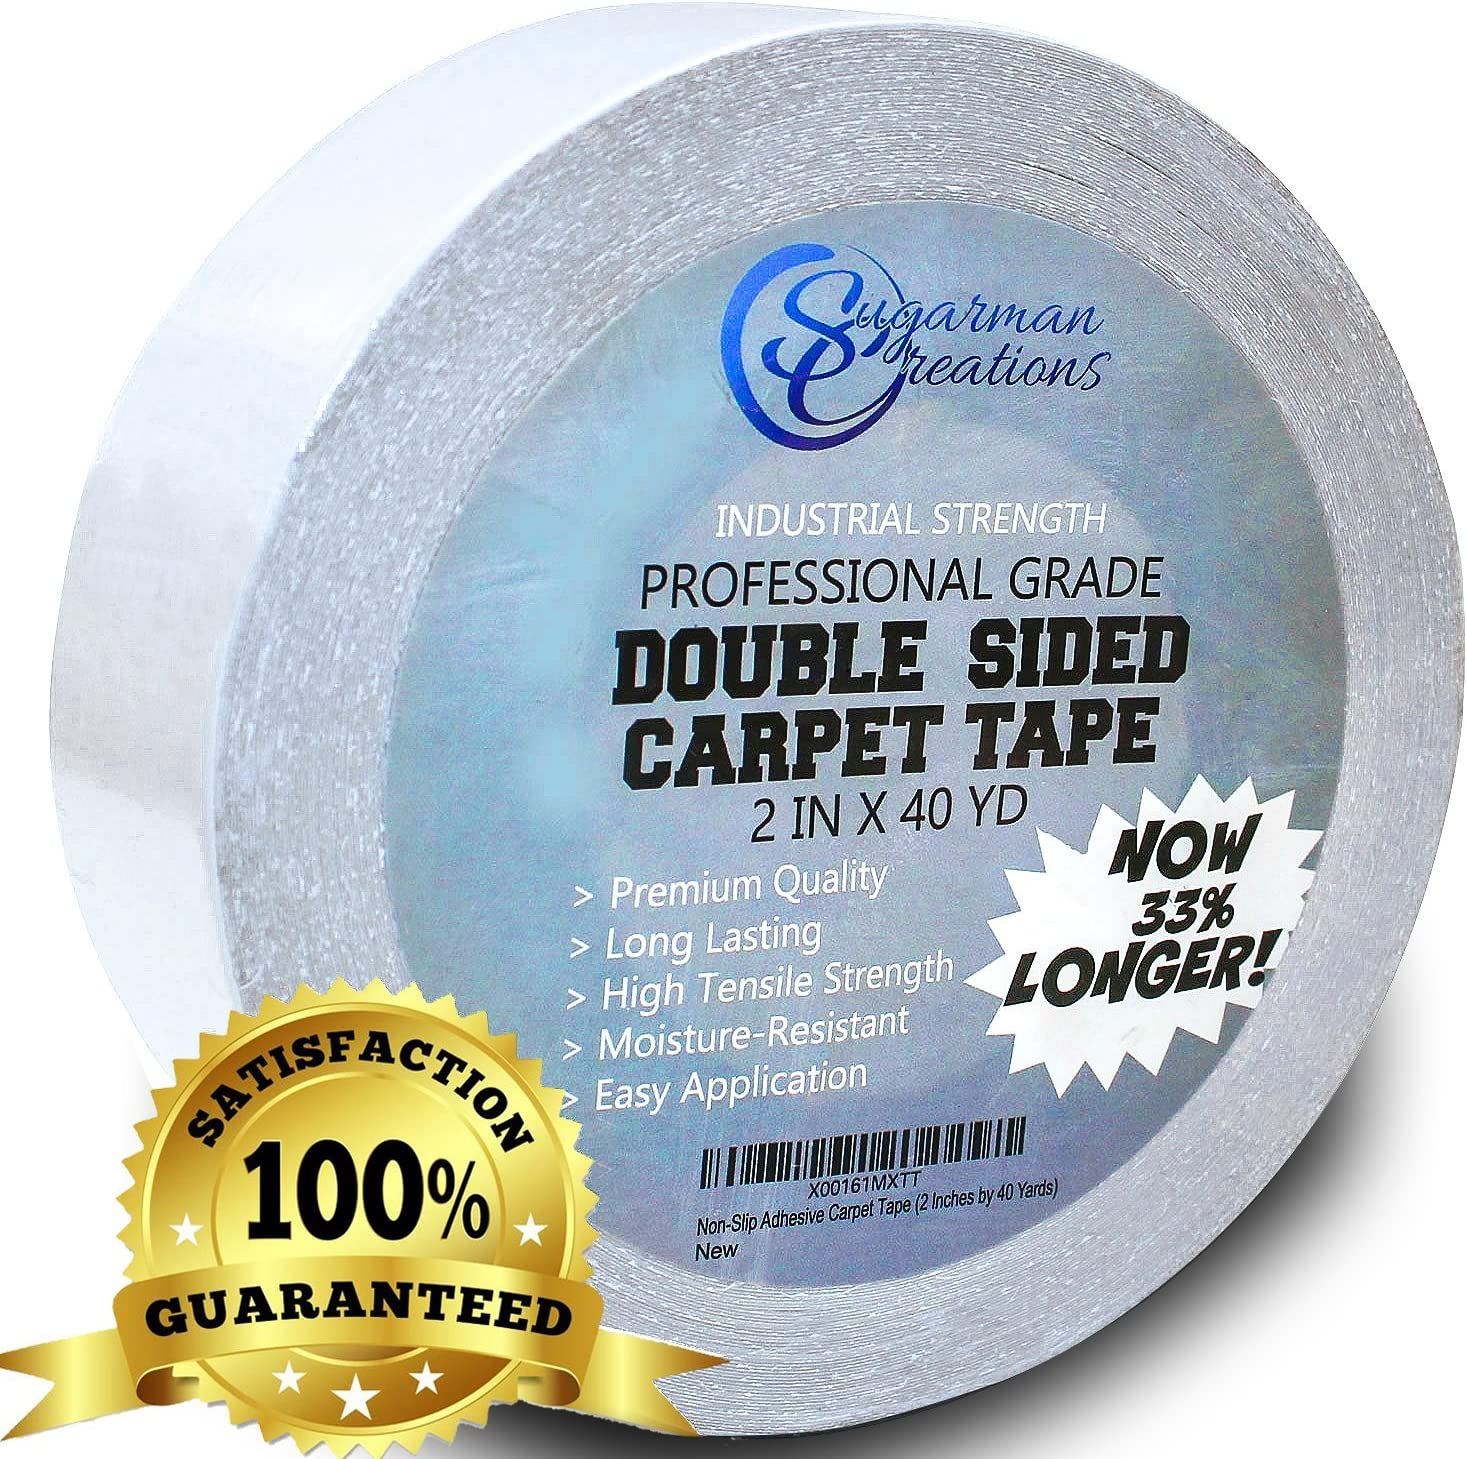 Sugarman Creations Strongest Double Sided Carpet Tape-[2-Inch-by-40-Yard, 120 feet!-2X More!]- 5 Stars Professional Grade, Industrial Strength, Heavy Duty Rug Tape.Top Rated Carpet Underlayment Adhesive - -